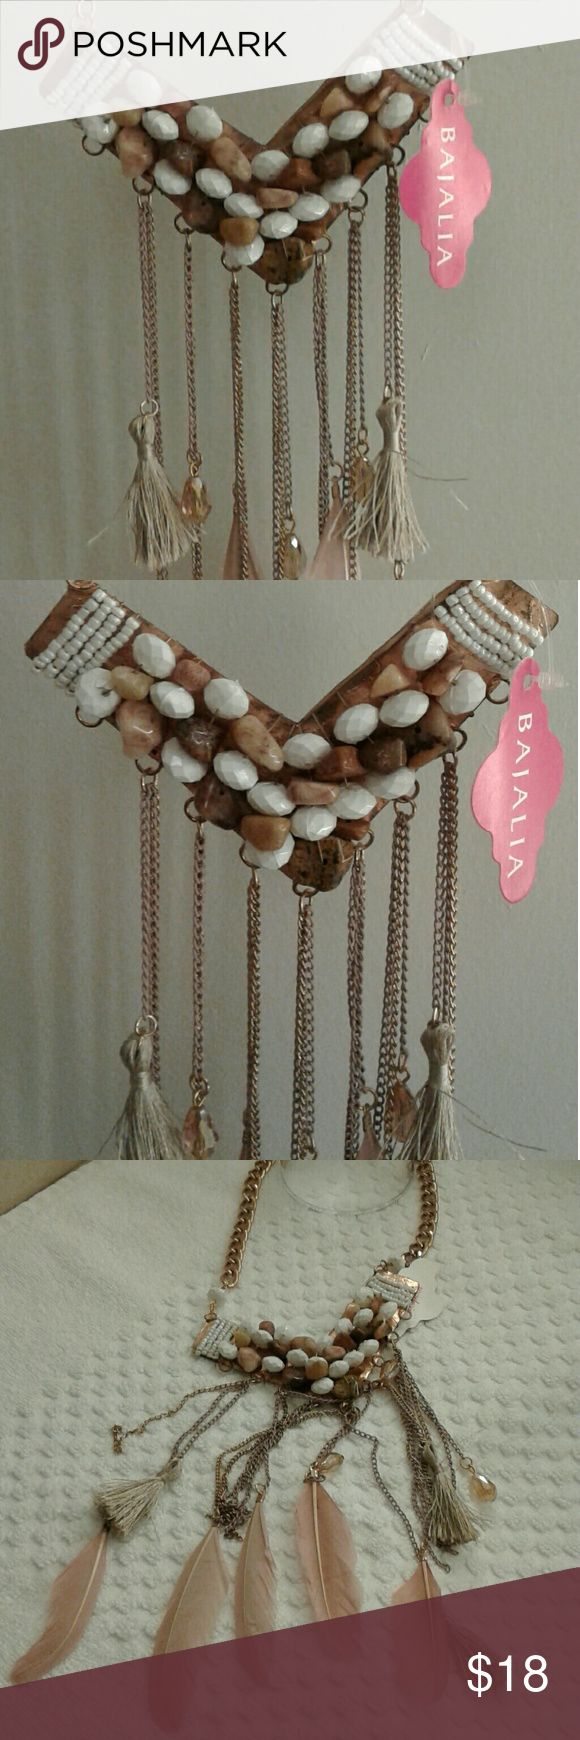 "Lovely feathers tassels and beads necklace NWT NWT gold, blush and cream colored feathers, tassels and beads decorate this lovely  necklace.  Measures 8 1/2"" lowest to 15"" to longest. Perfect with any outfit. Jewelry Necklaces"